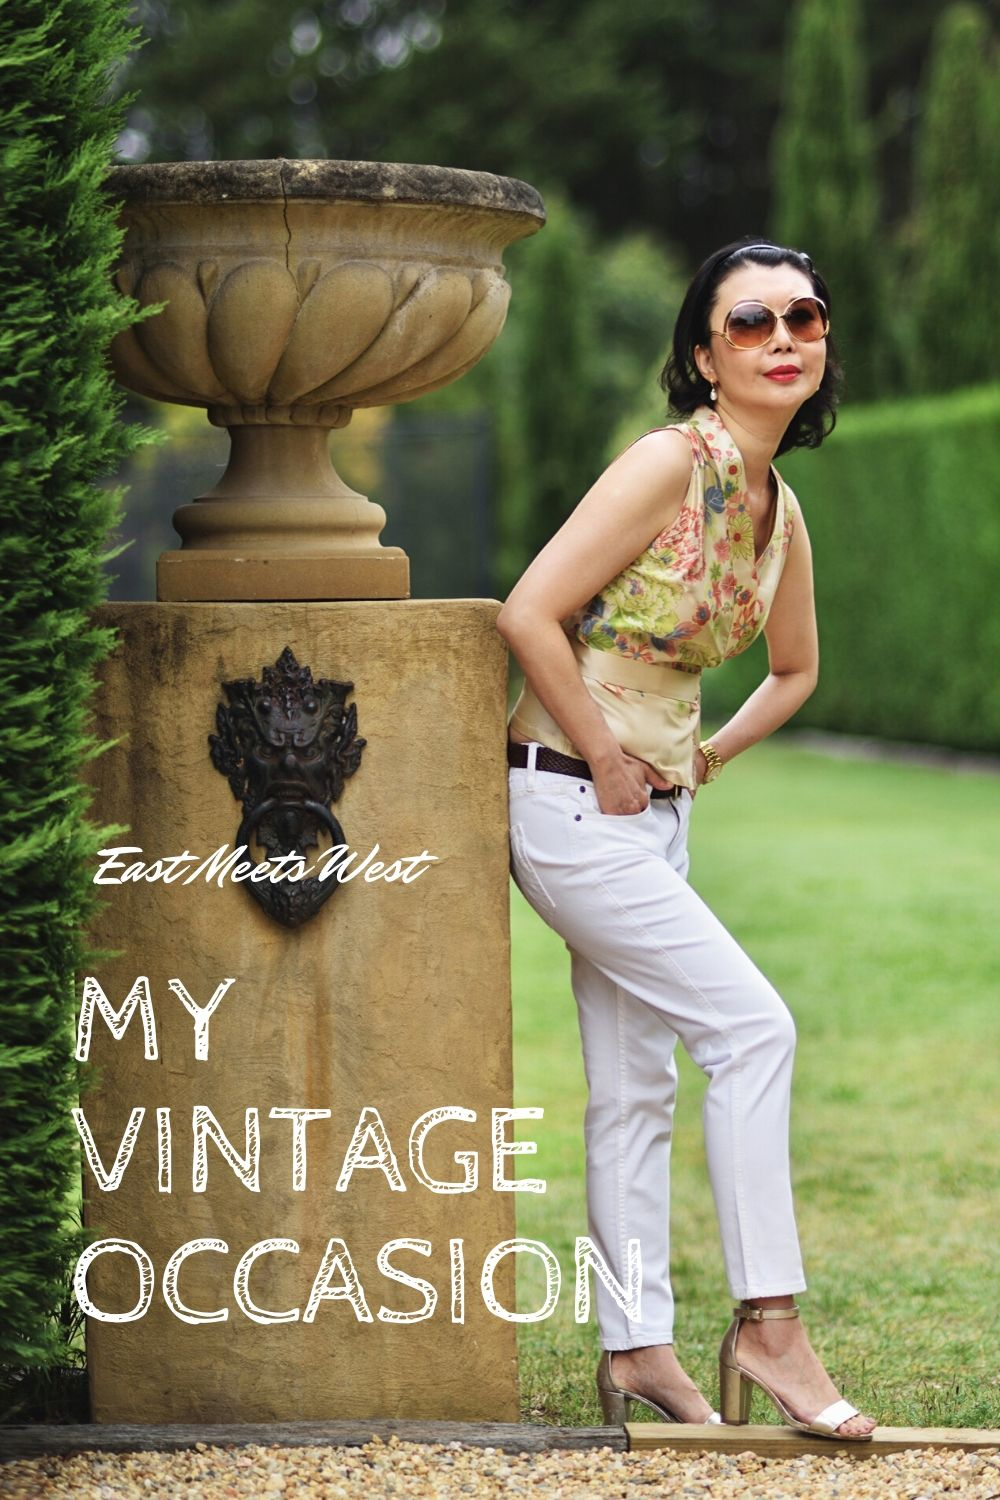 My Vintage Occasion - When East Meets West. Southern Highlands fashion portraits by Australian fashion photographer Kent Johnson.